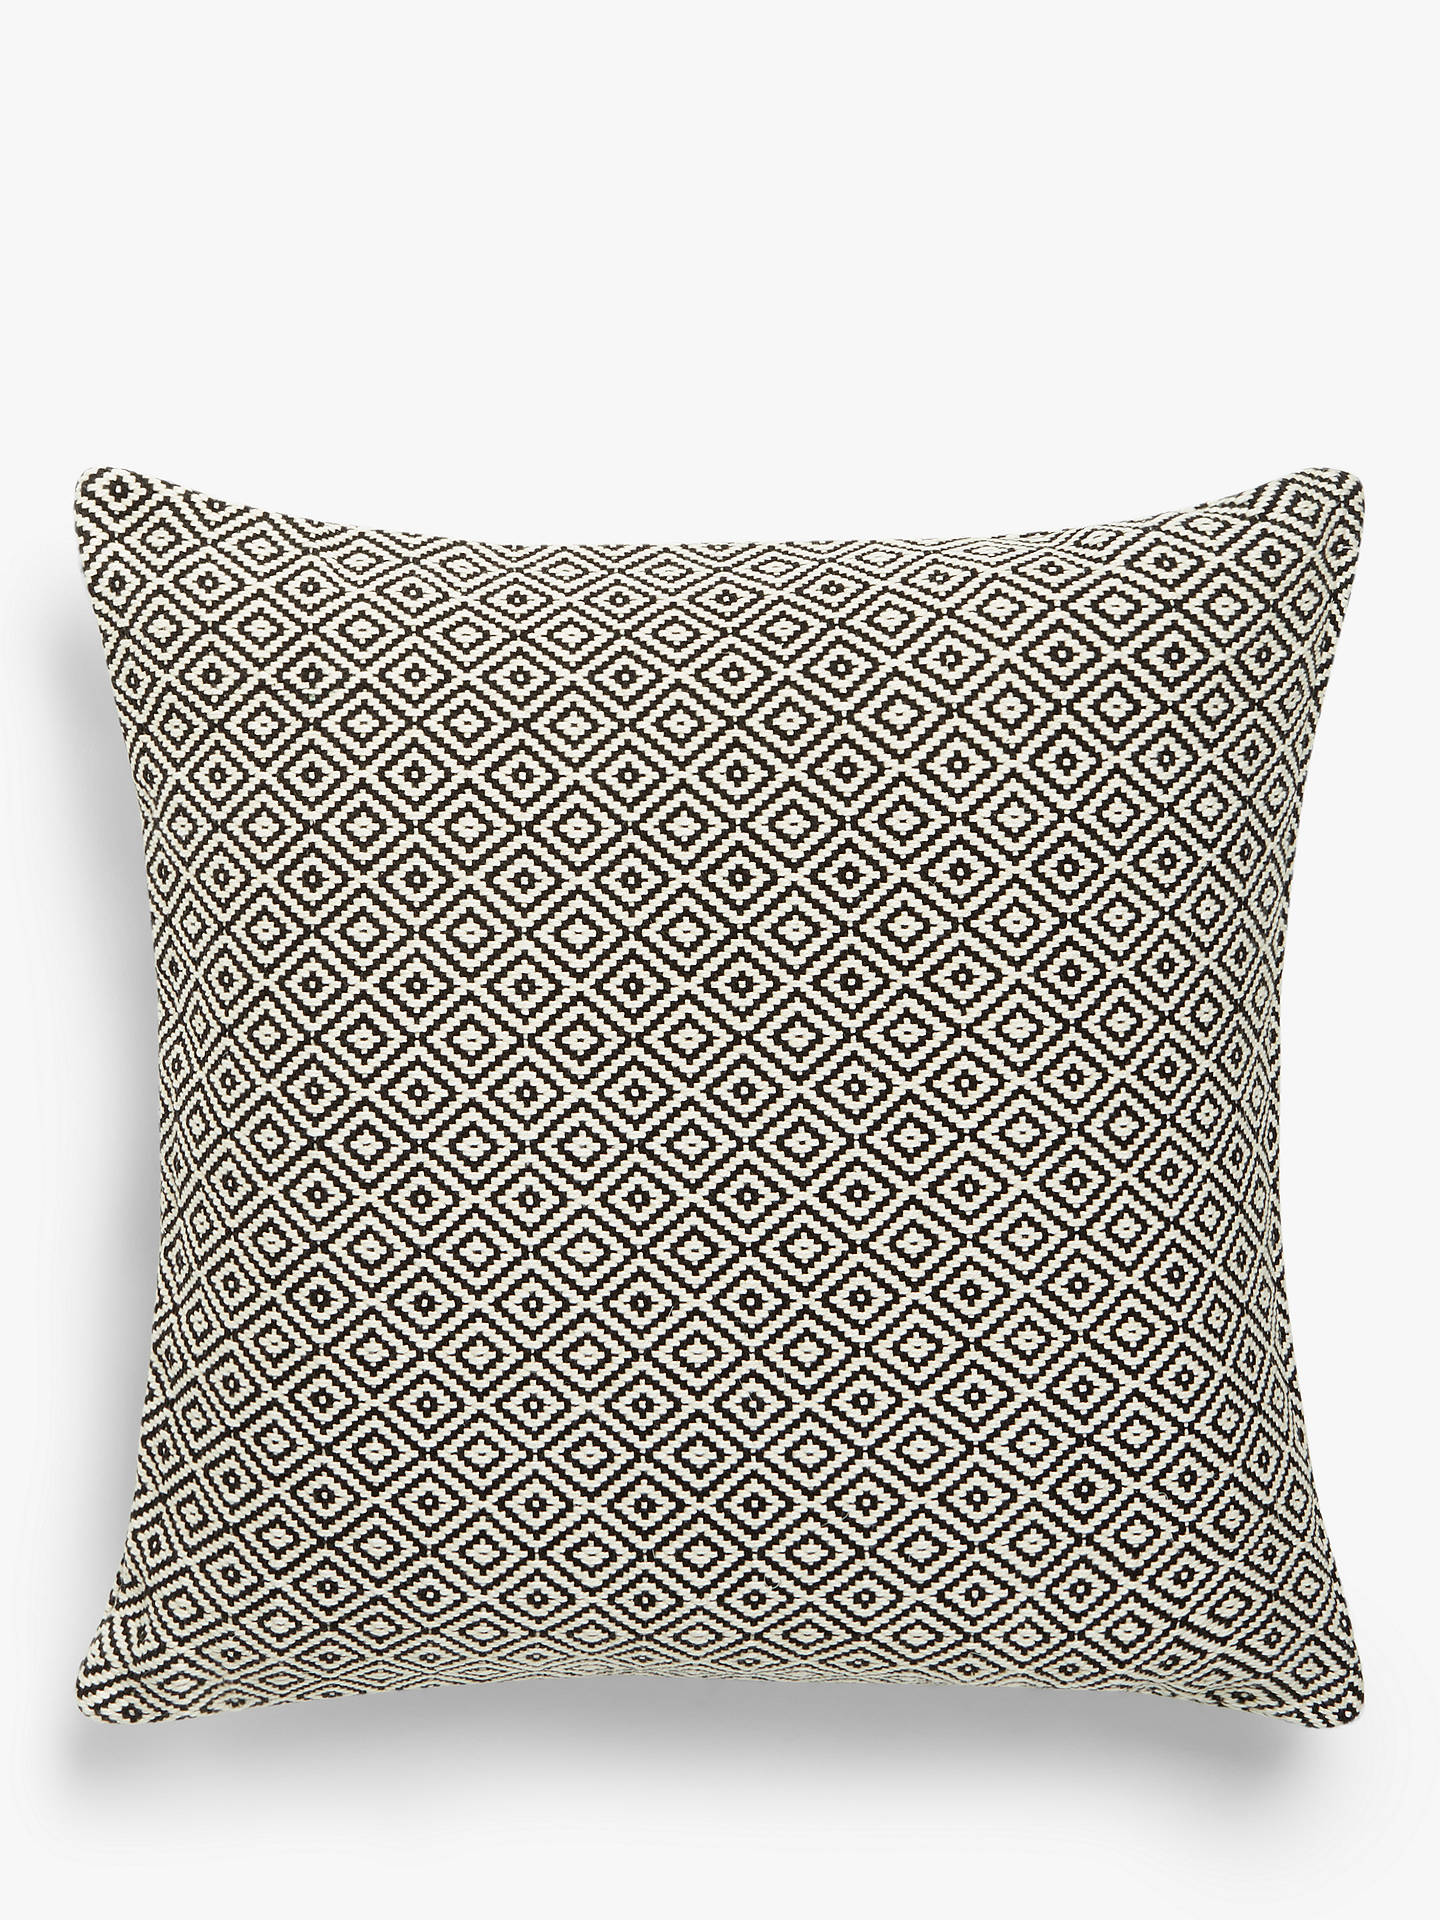 Buy John Lewis & Partners Diamonds Cushion, Black / White Online at johnlewis.com